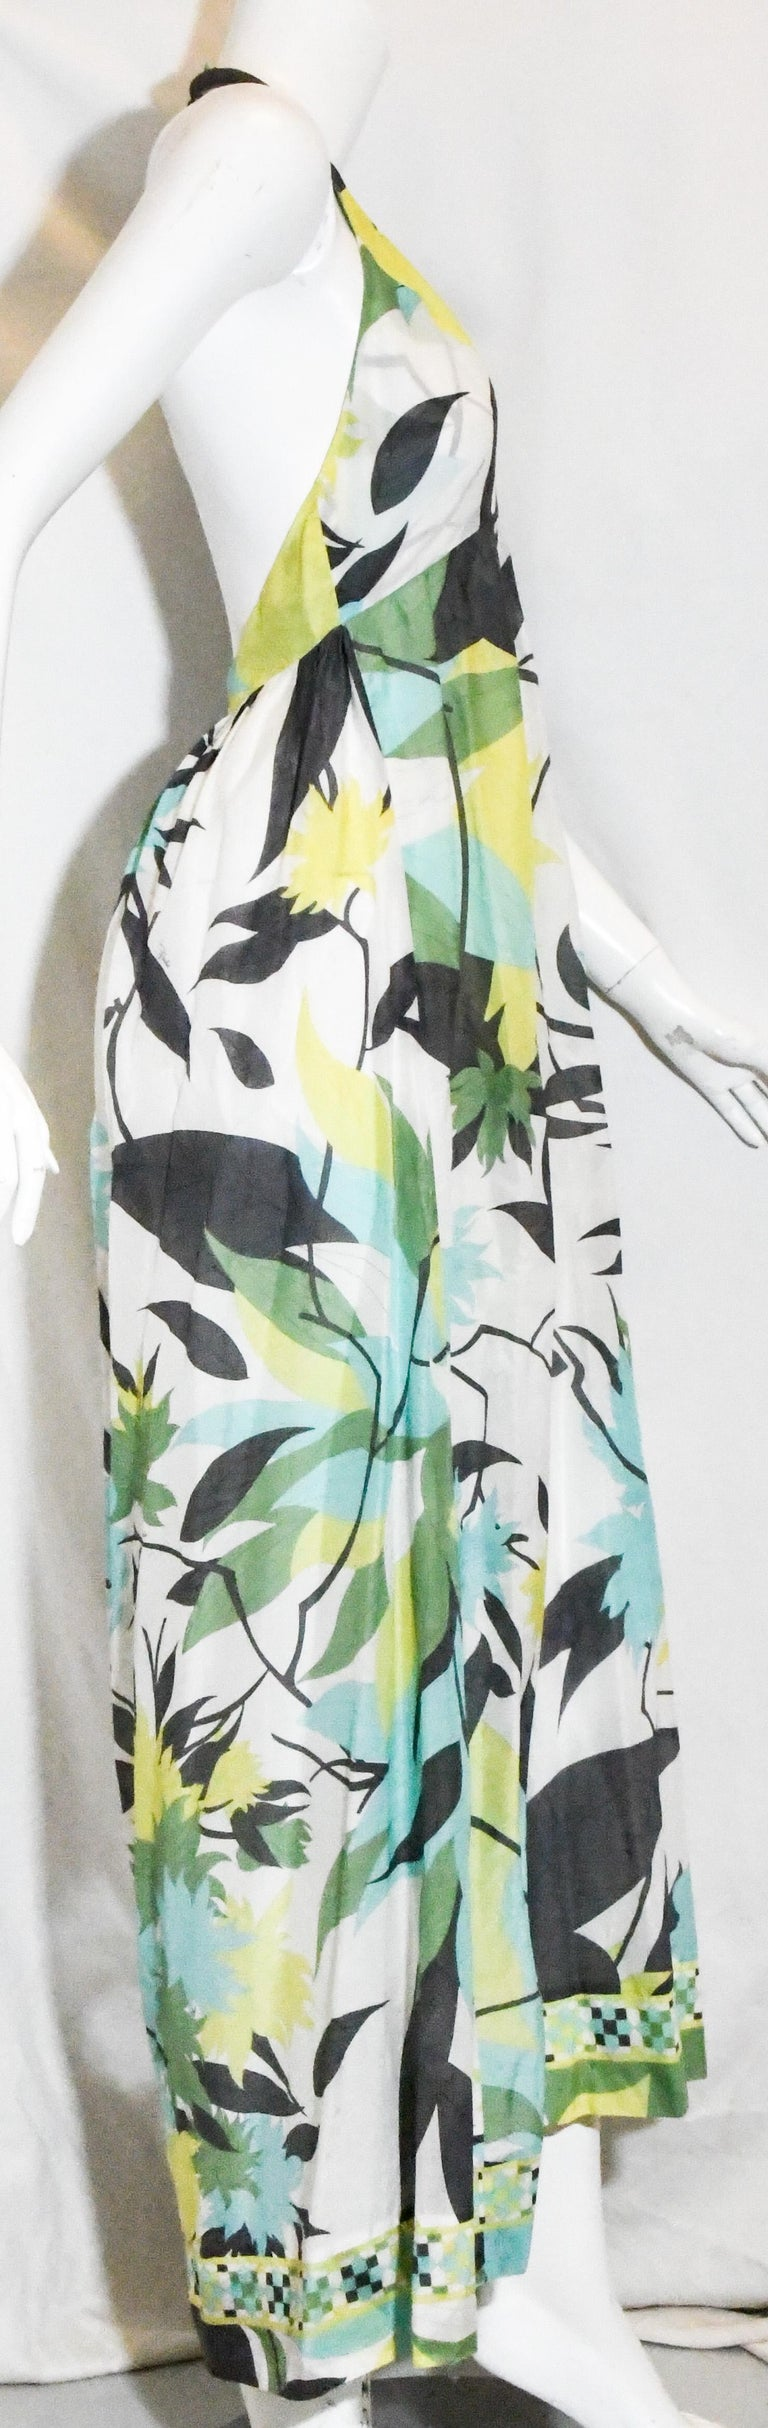 Emilio Pucci halter V neck abstract floral print dress with bare back and asymmetric hemline.  This dress is shorter at front with gathered skirt.  Enjoy this dress for day or night, casual and classy.   Dress is in excellent condition.  Made in